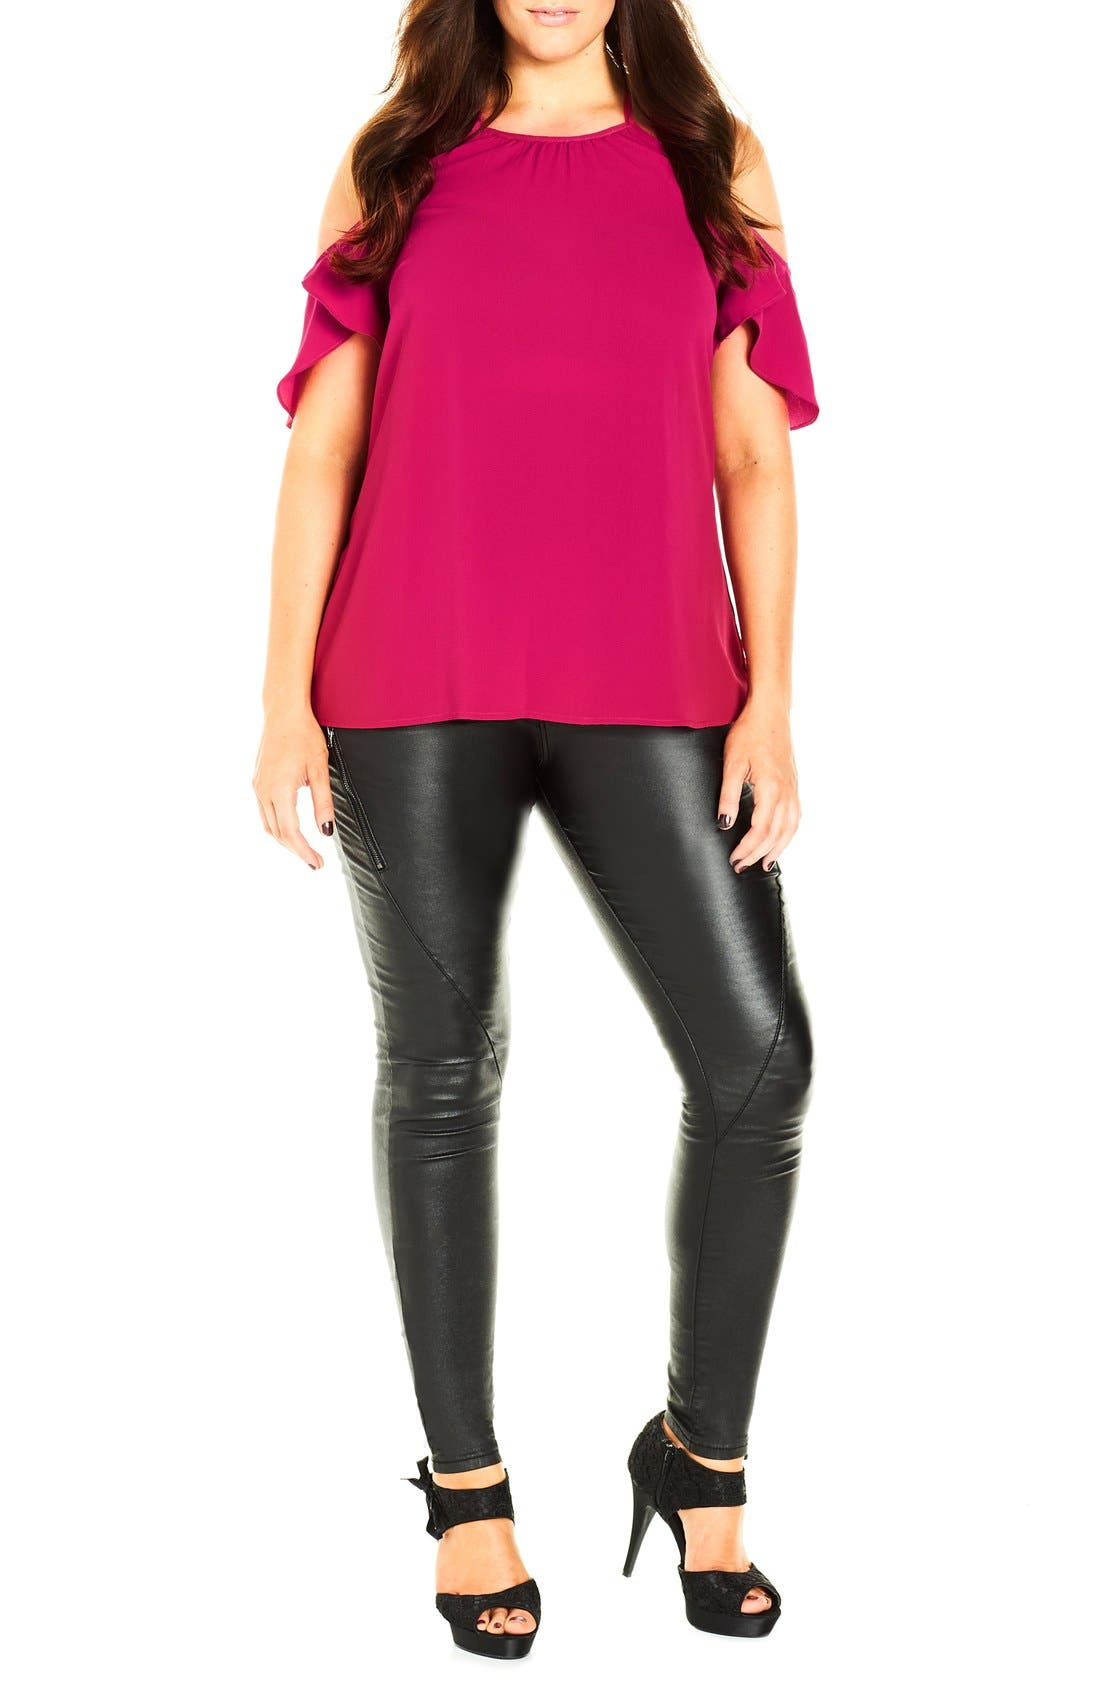 Main Image - City Chic 'Flirty Sleeve' Crepe Cold Shoulder Top (Plus Size)